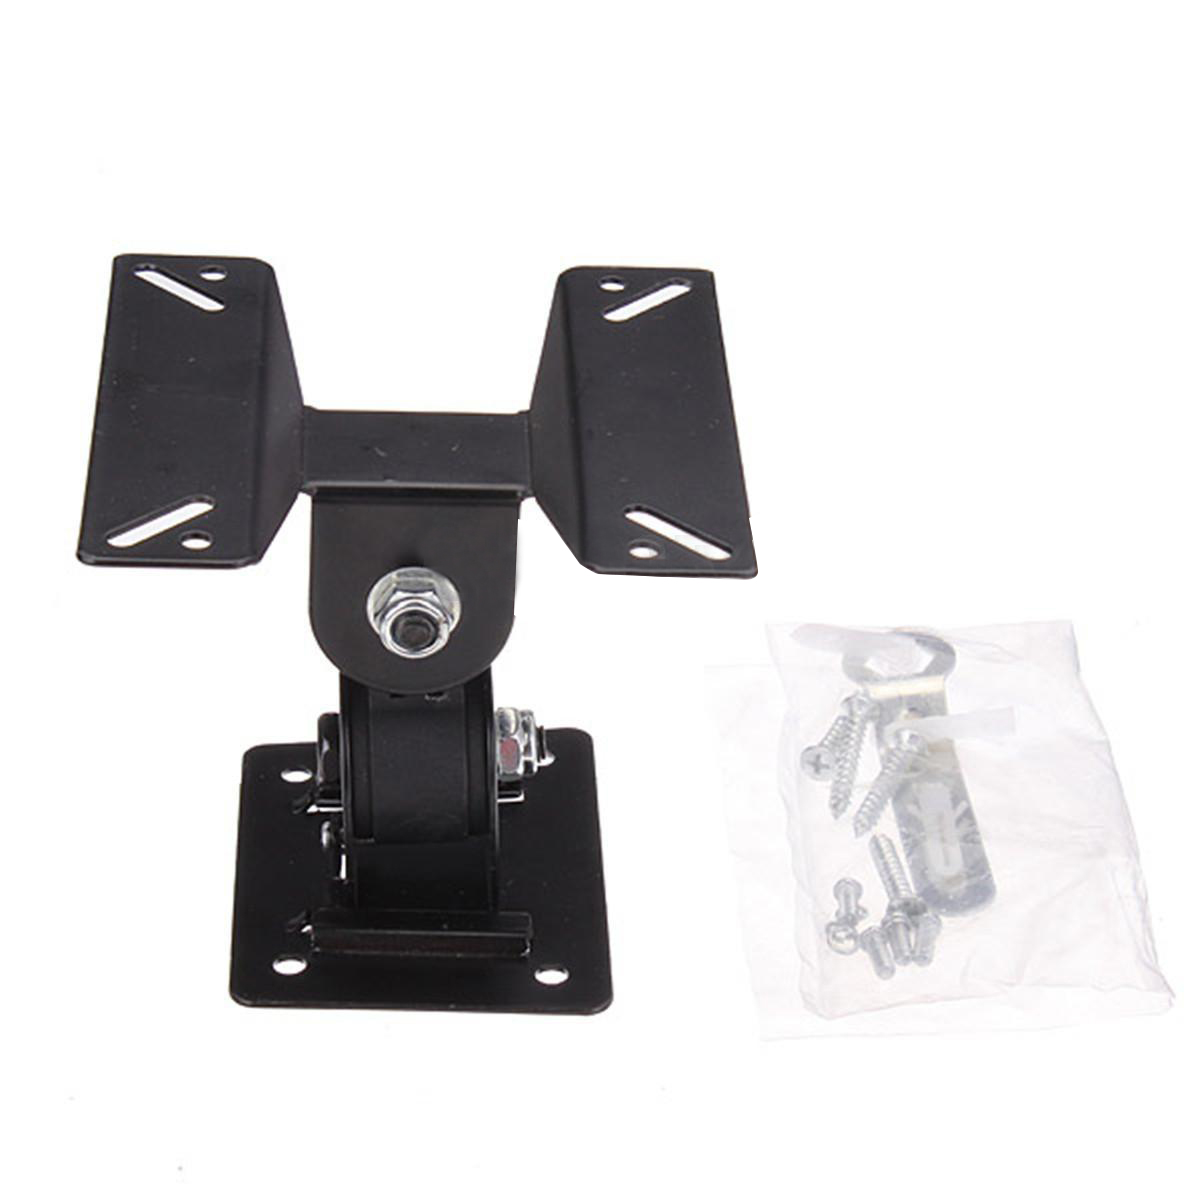 14-24inch LCD TV Plasma Bracket tiltable Wall bracket Wall bracket swiveling